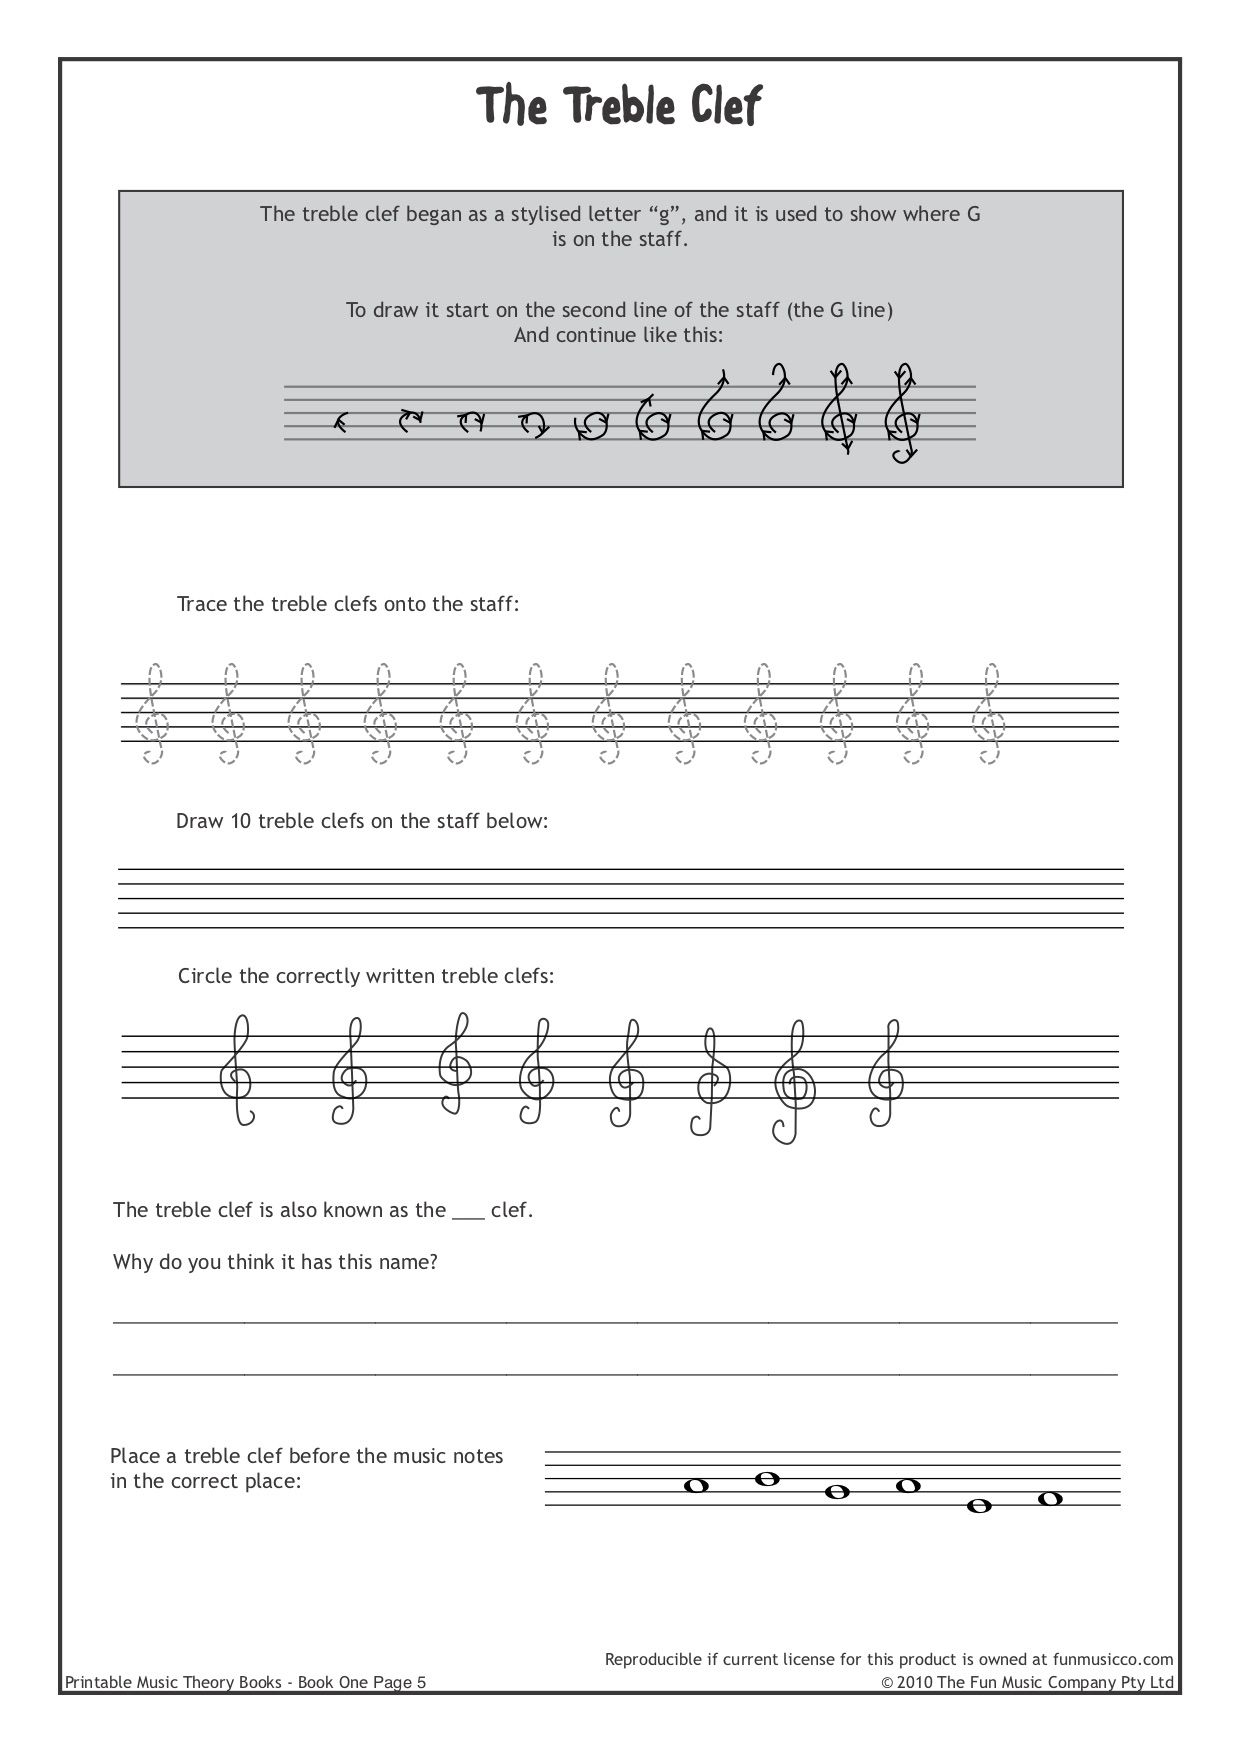 Downloadable Music Theory Worksheets At Funmusicco